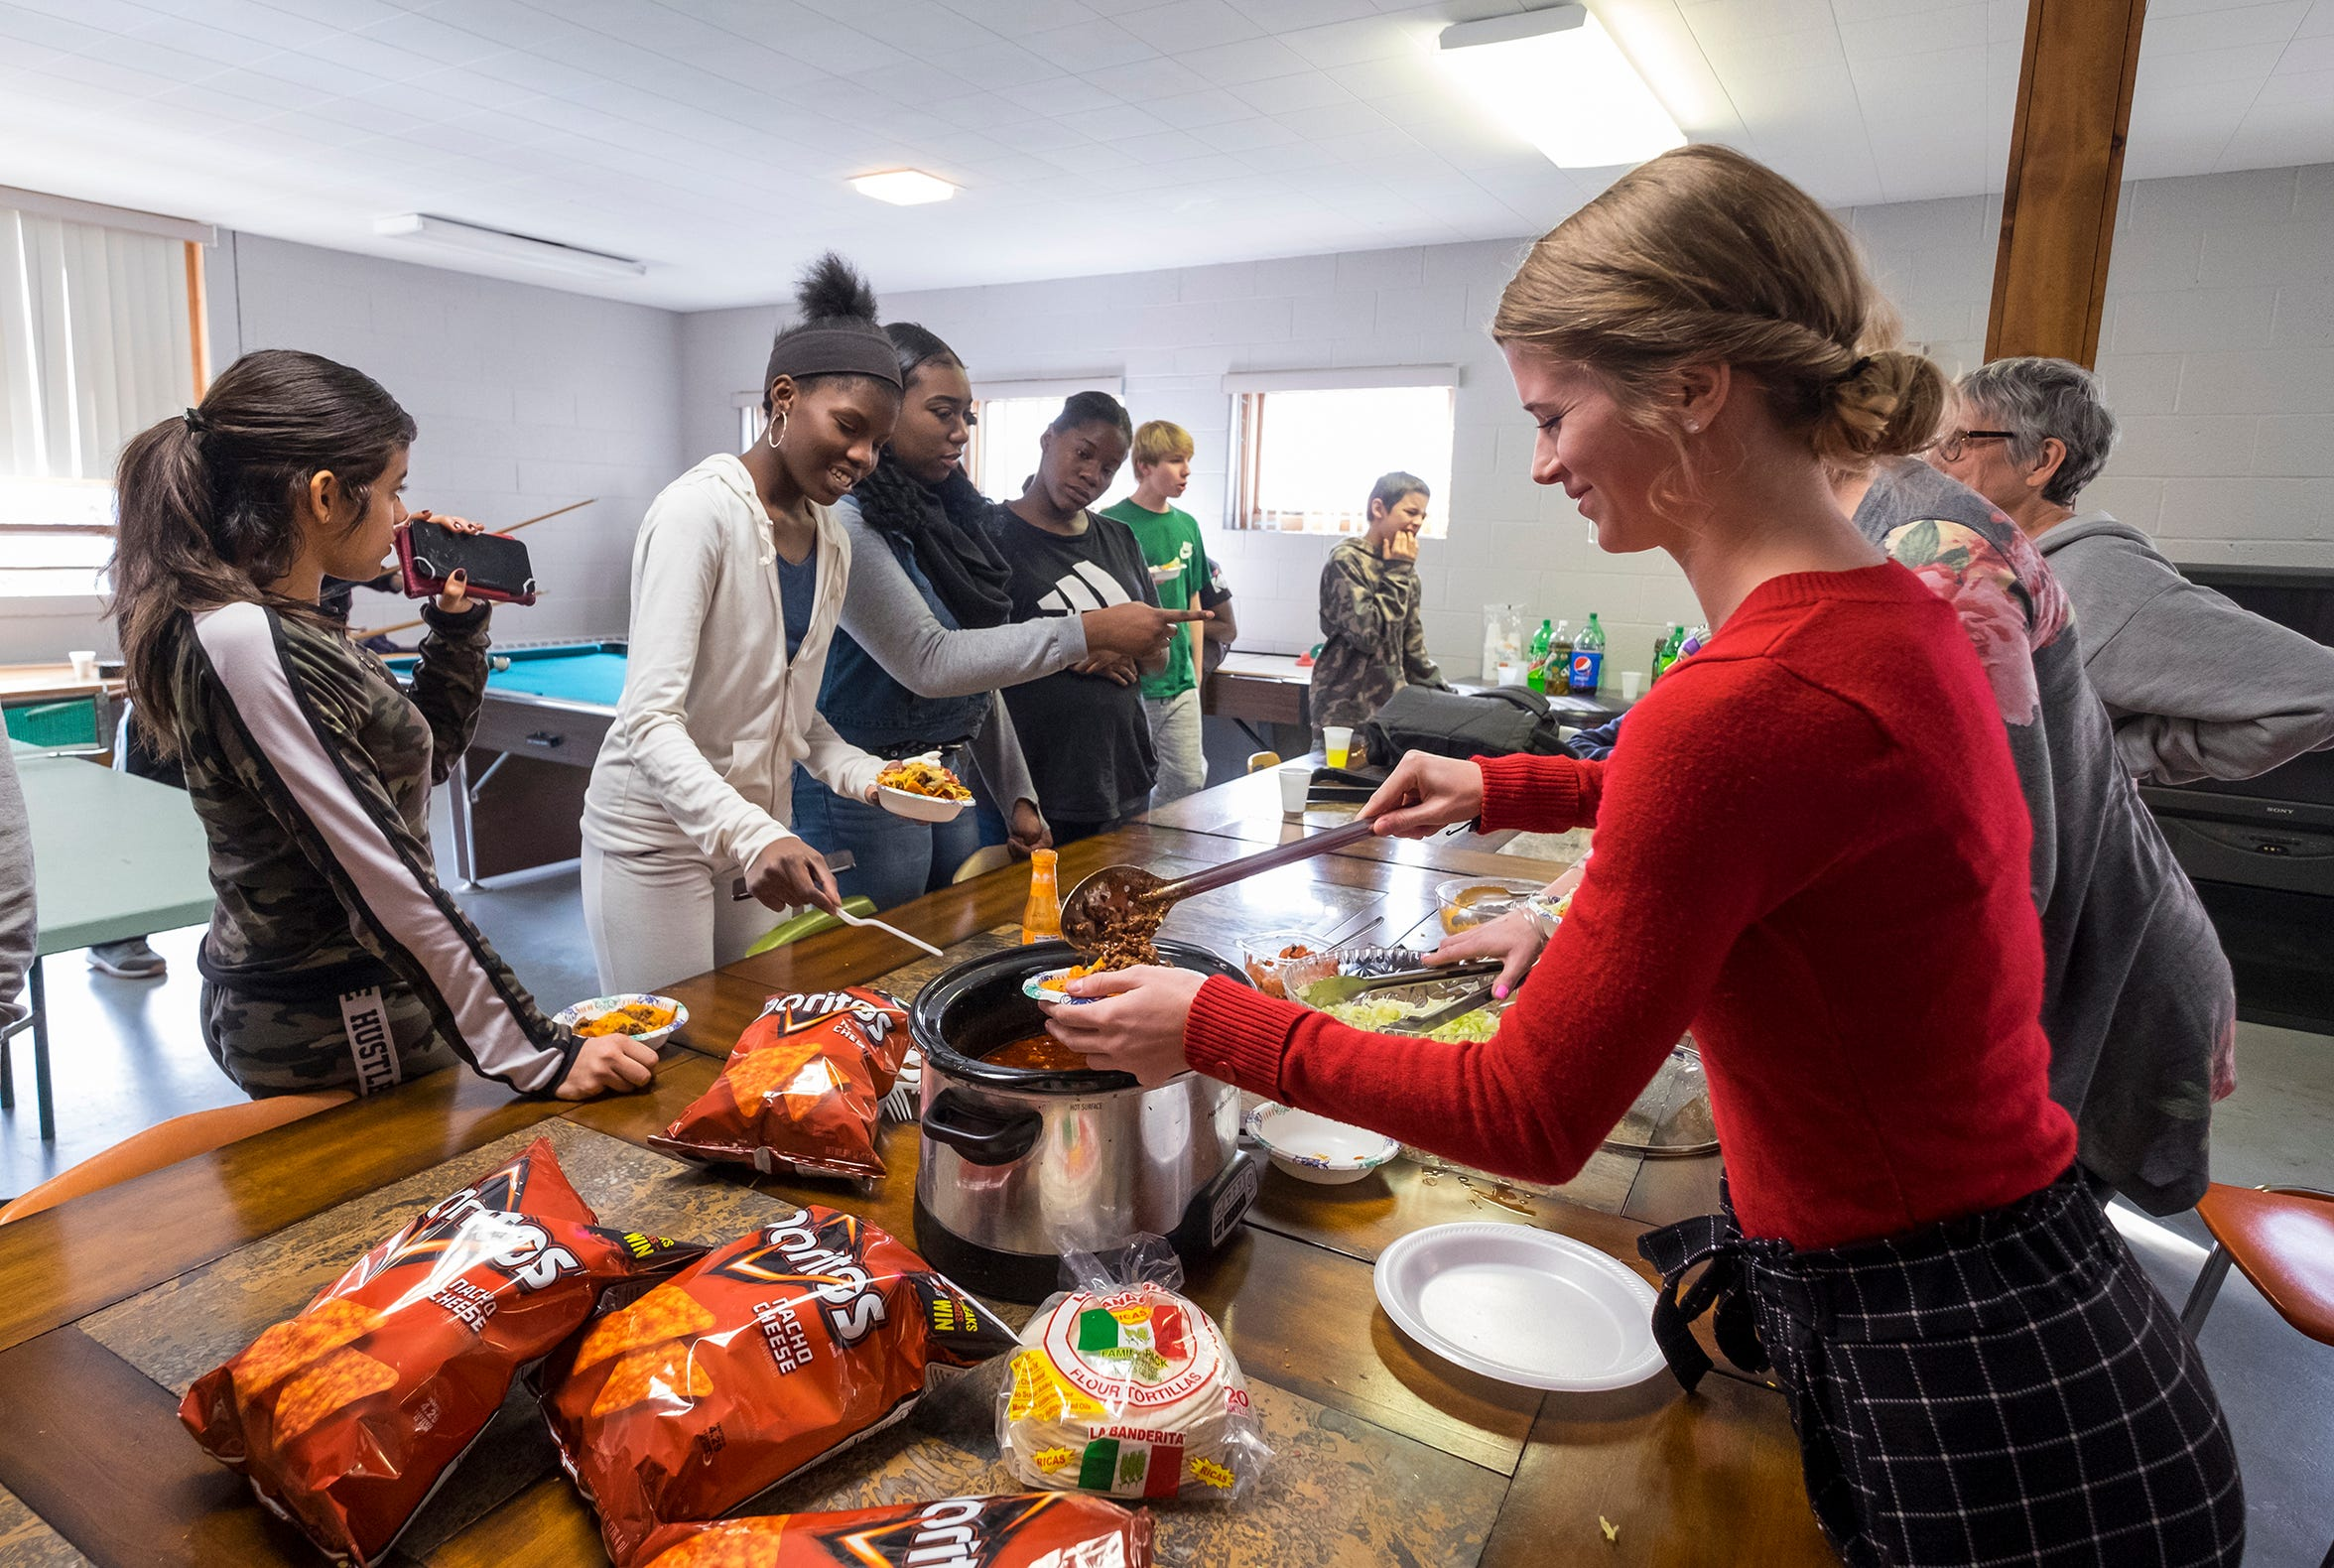 Difference Makers volunteer Lauren Jones, right, serves lunch to a group of teens Thursday, Feb. 21, 2019 in a room on the Center's second floor. Difference Makers began hosting programs at the Center in March 2018.